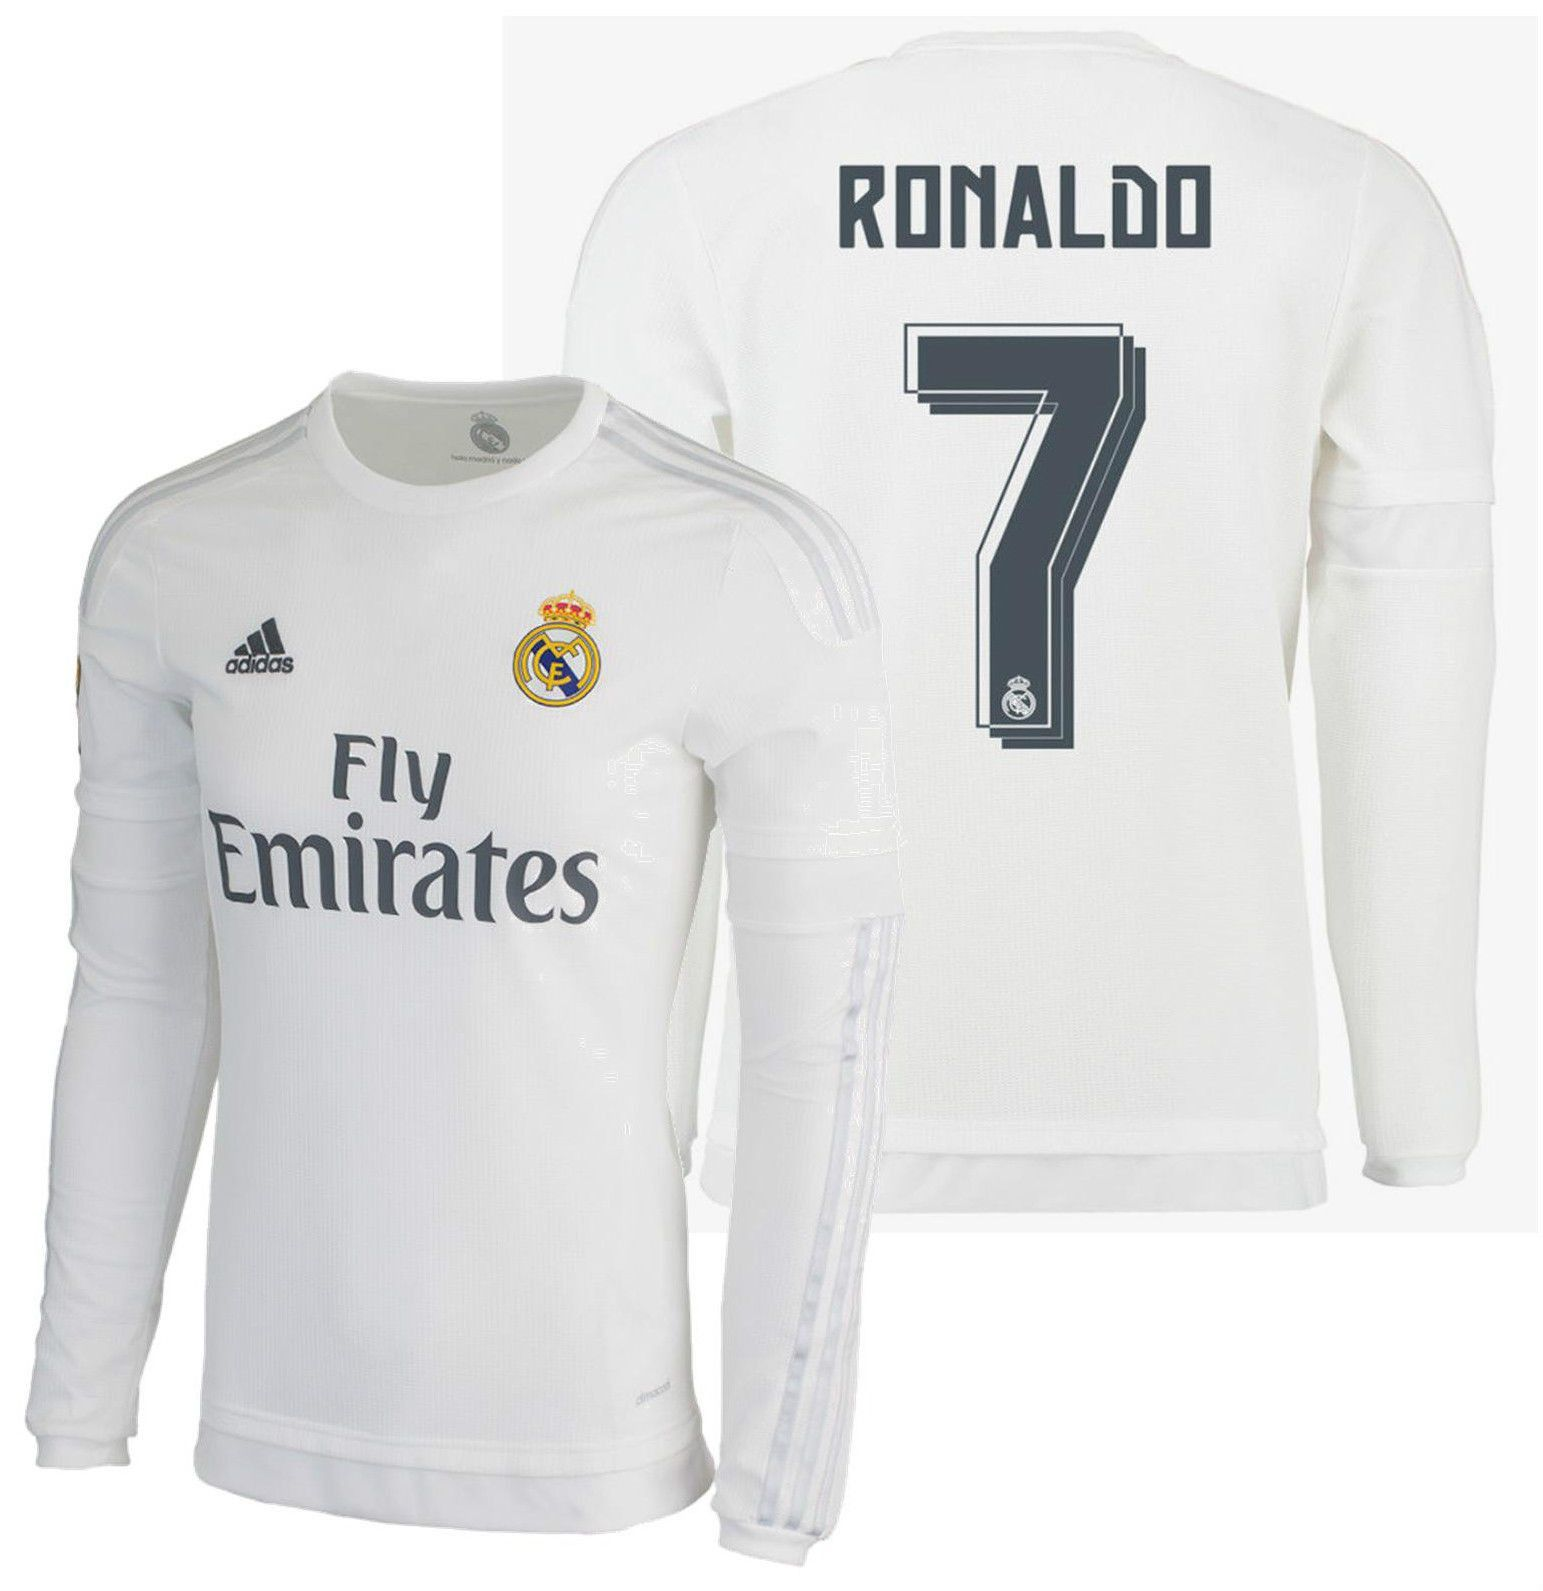 4af7941fbf2 Adidas cristiano ronaldo real madrid long sleeve home jersey 2015 16 ...